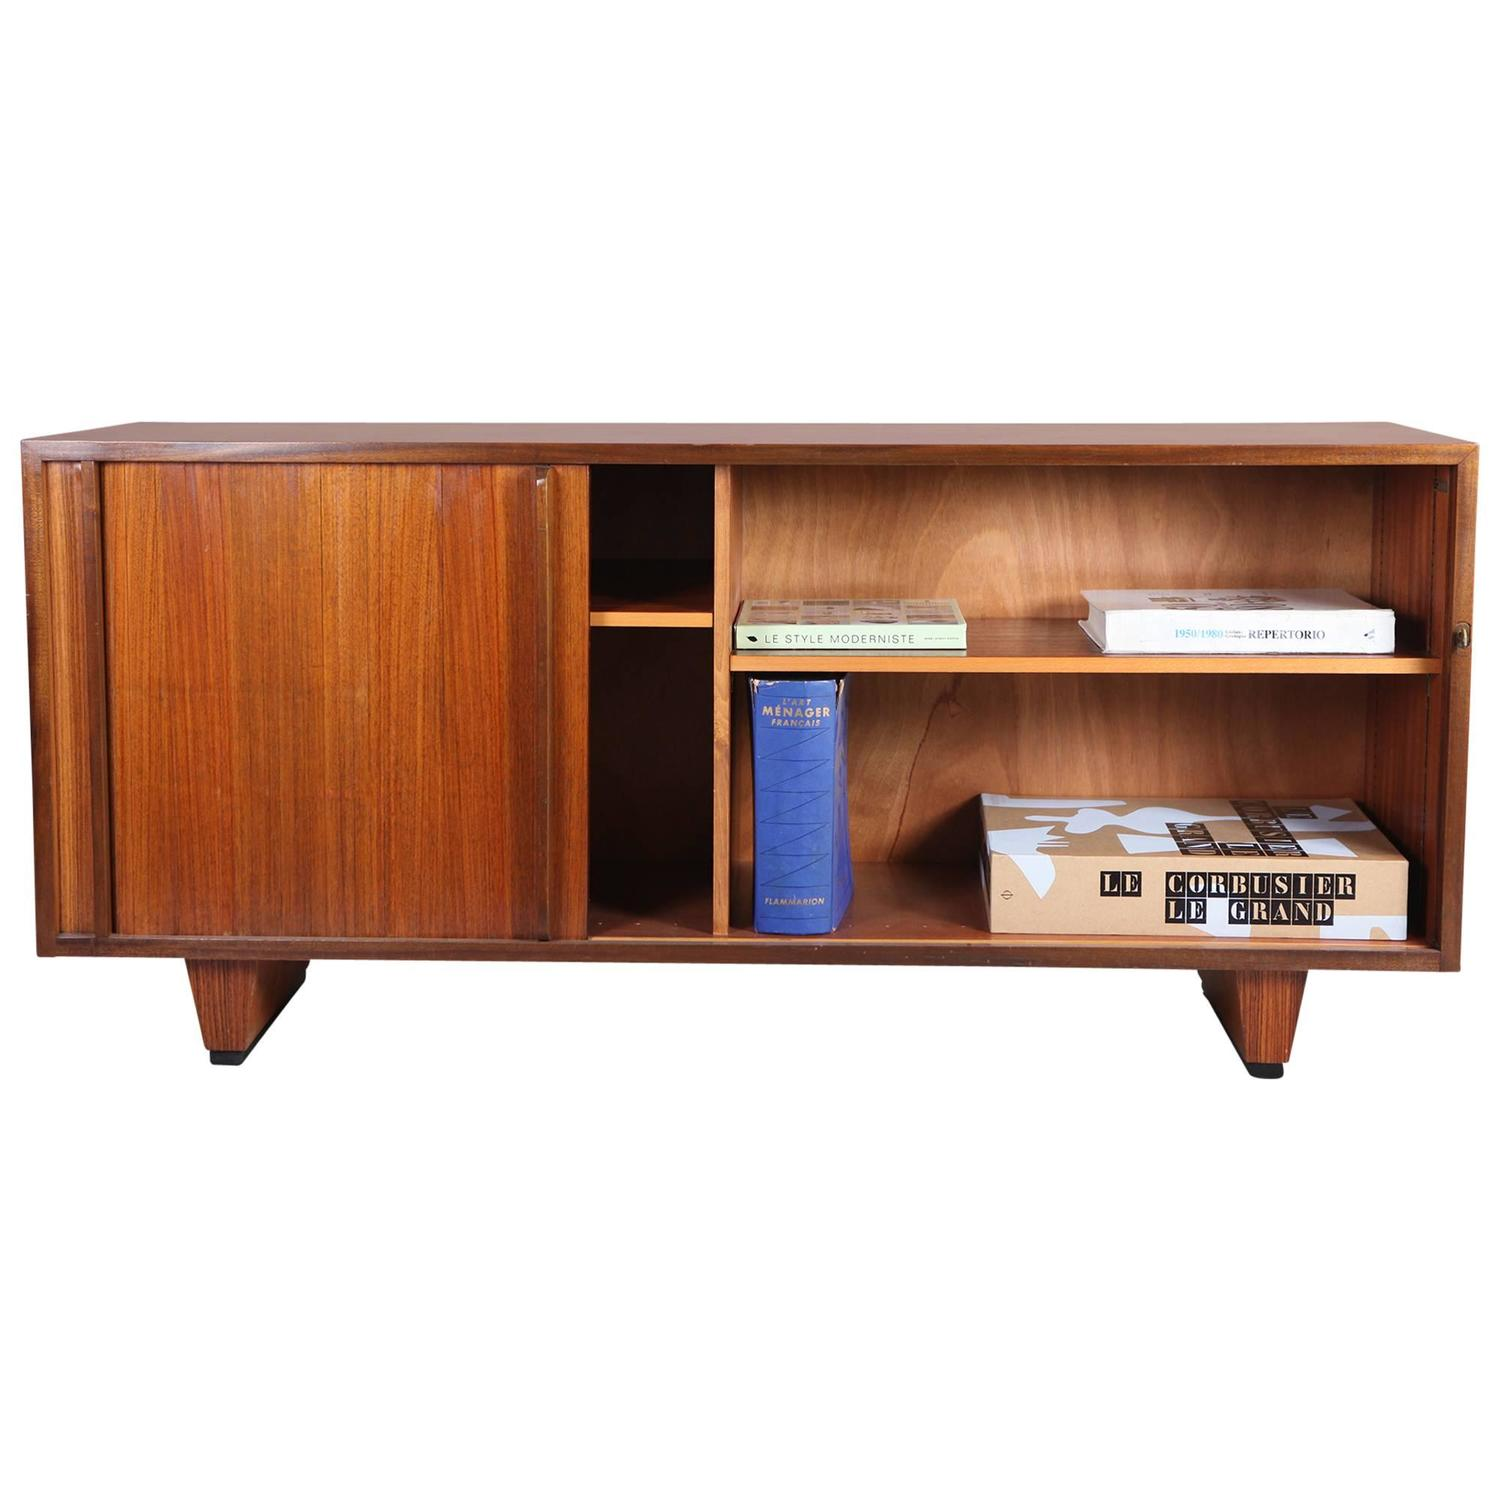 swiss design sideboard bauhaus stil at 1stdibs. Black Bedroom Furniture Sets. Home Design Ideas